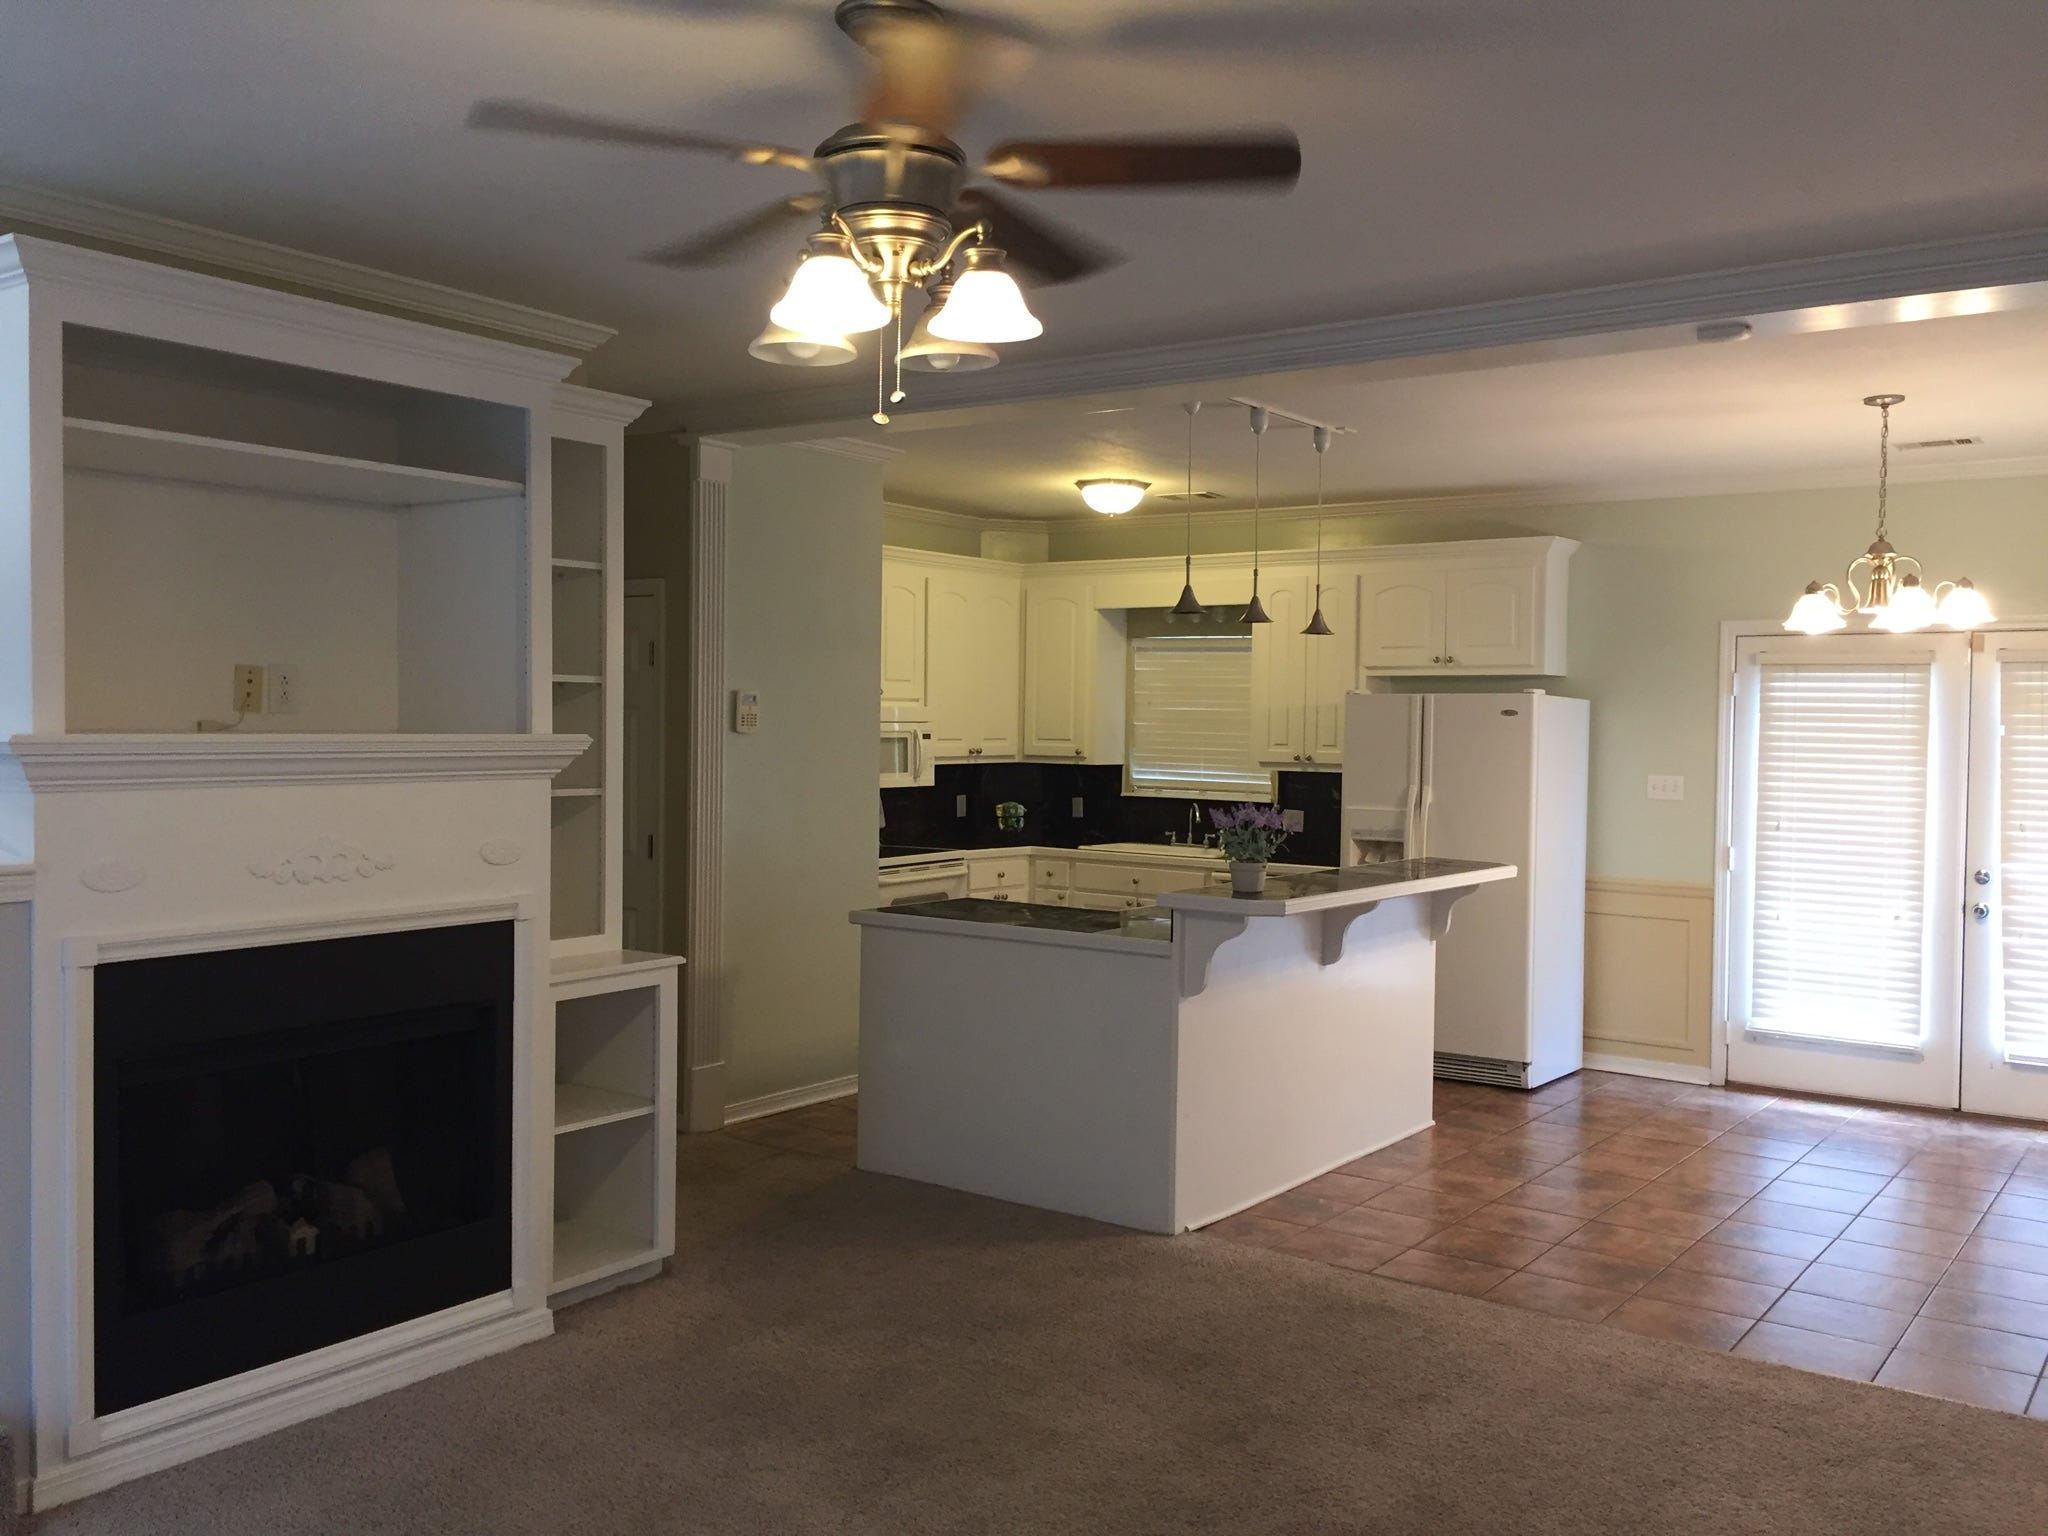 HATTIESBURG, MISSISSISSIPPI, 29 Hillcrest Unit 11 Single Family Home, 3  Bdrm, 2 Ba, 1911 Sq. Ft., Built In 2005, Washer, Dryer, Microwave,  Refrigirator, ...